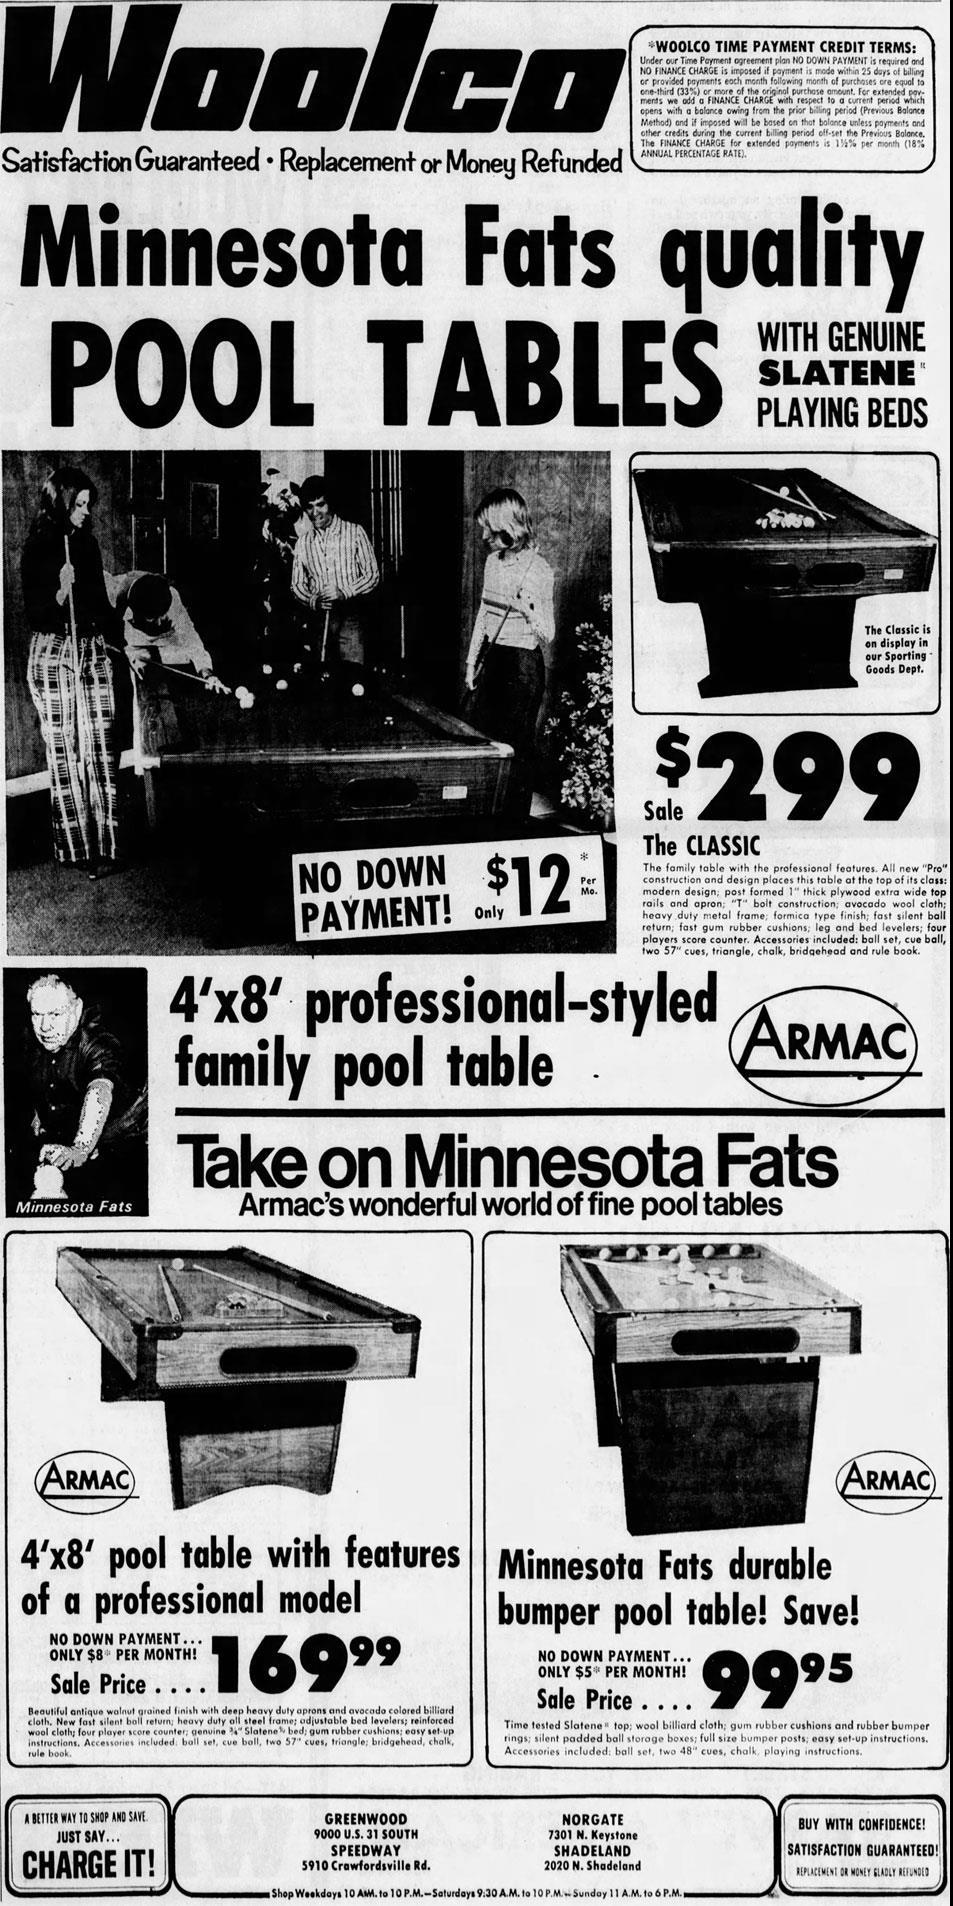 armac-minnesota-fats-pool-table-ad.jpg